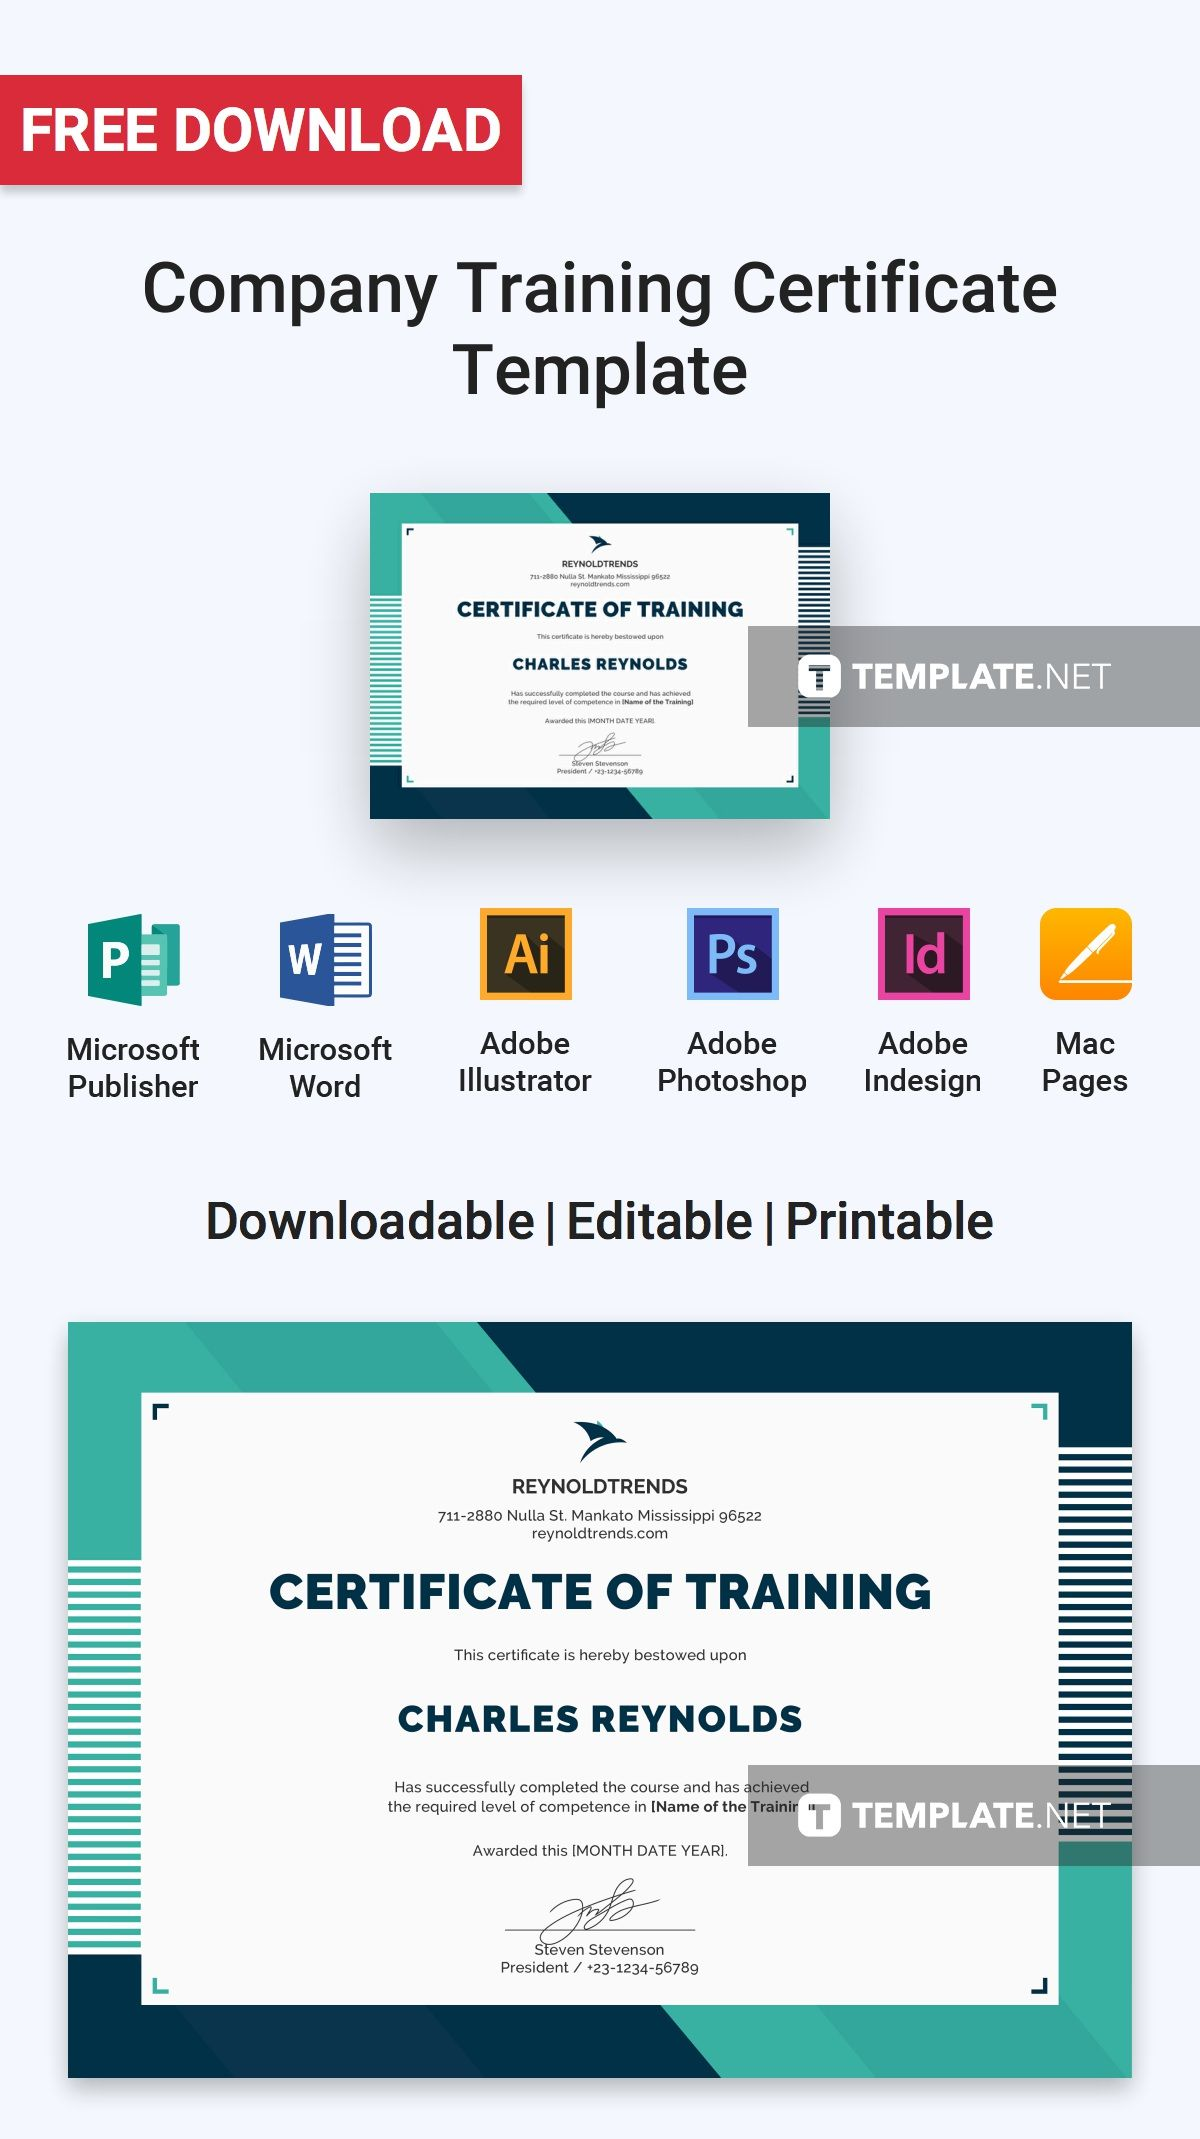 Free Printable Editable Certificates Adorable Free Company Training Certificate  Training Certificate .